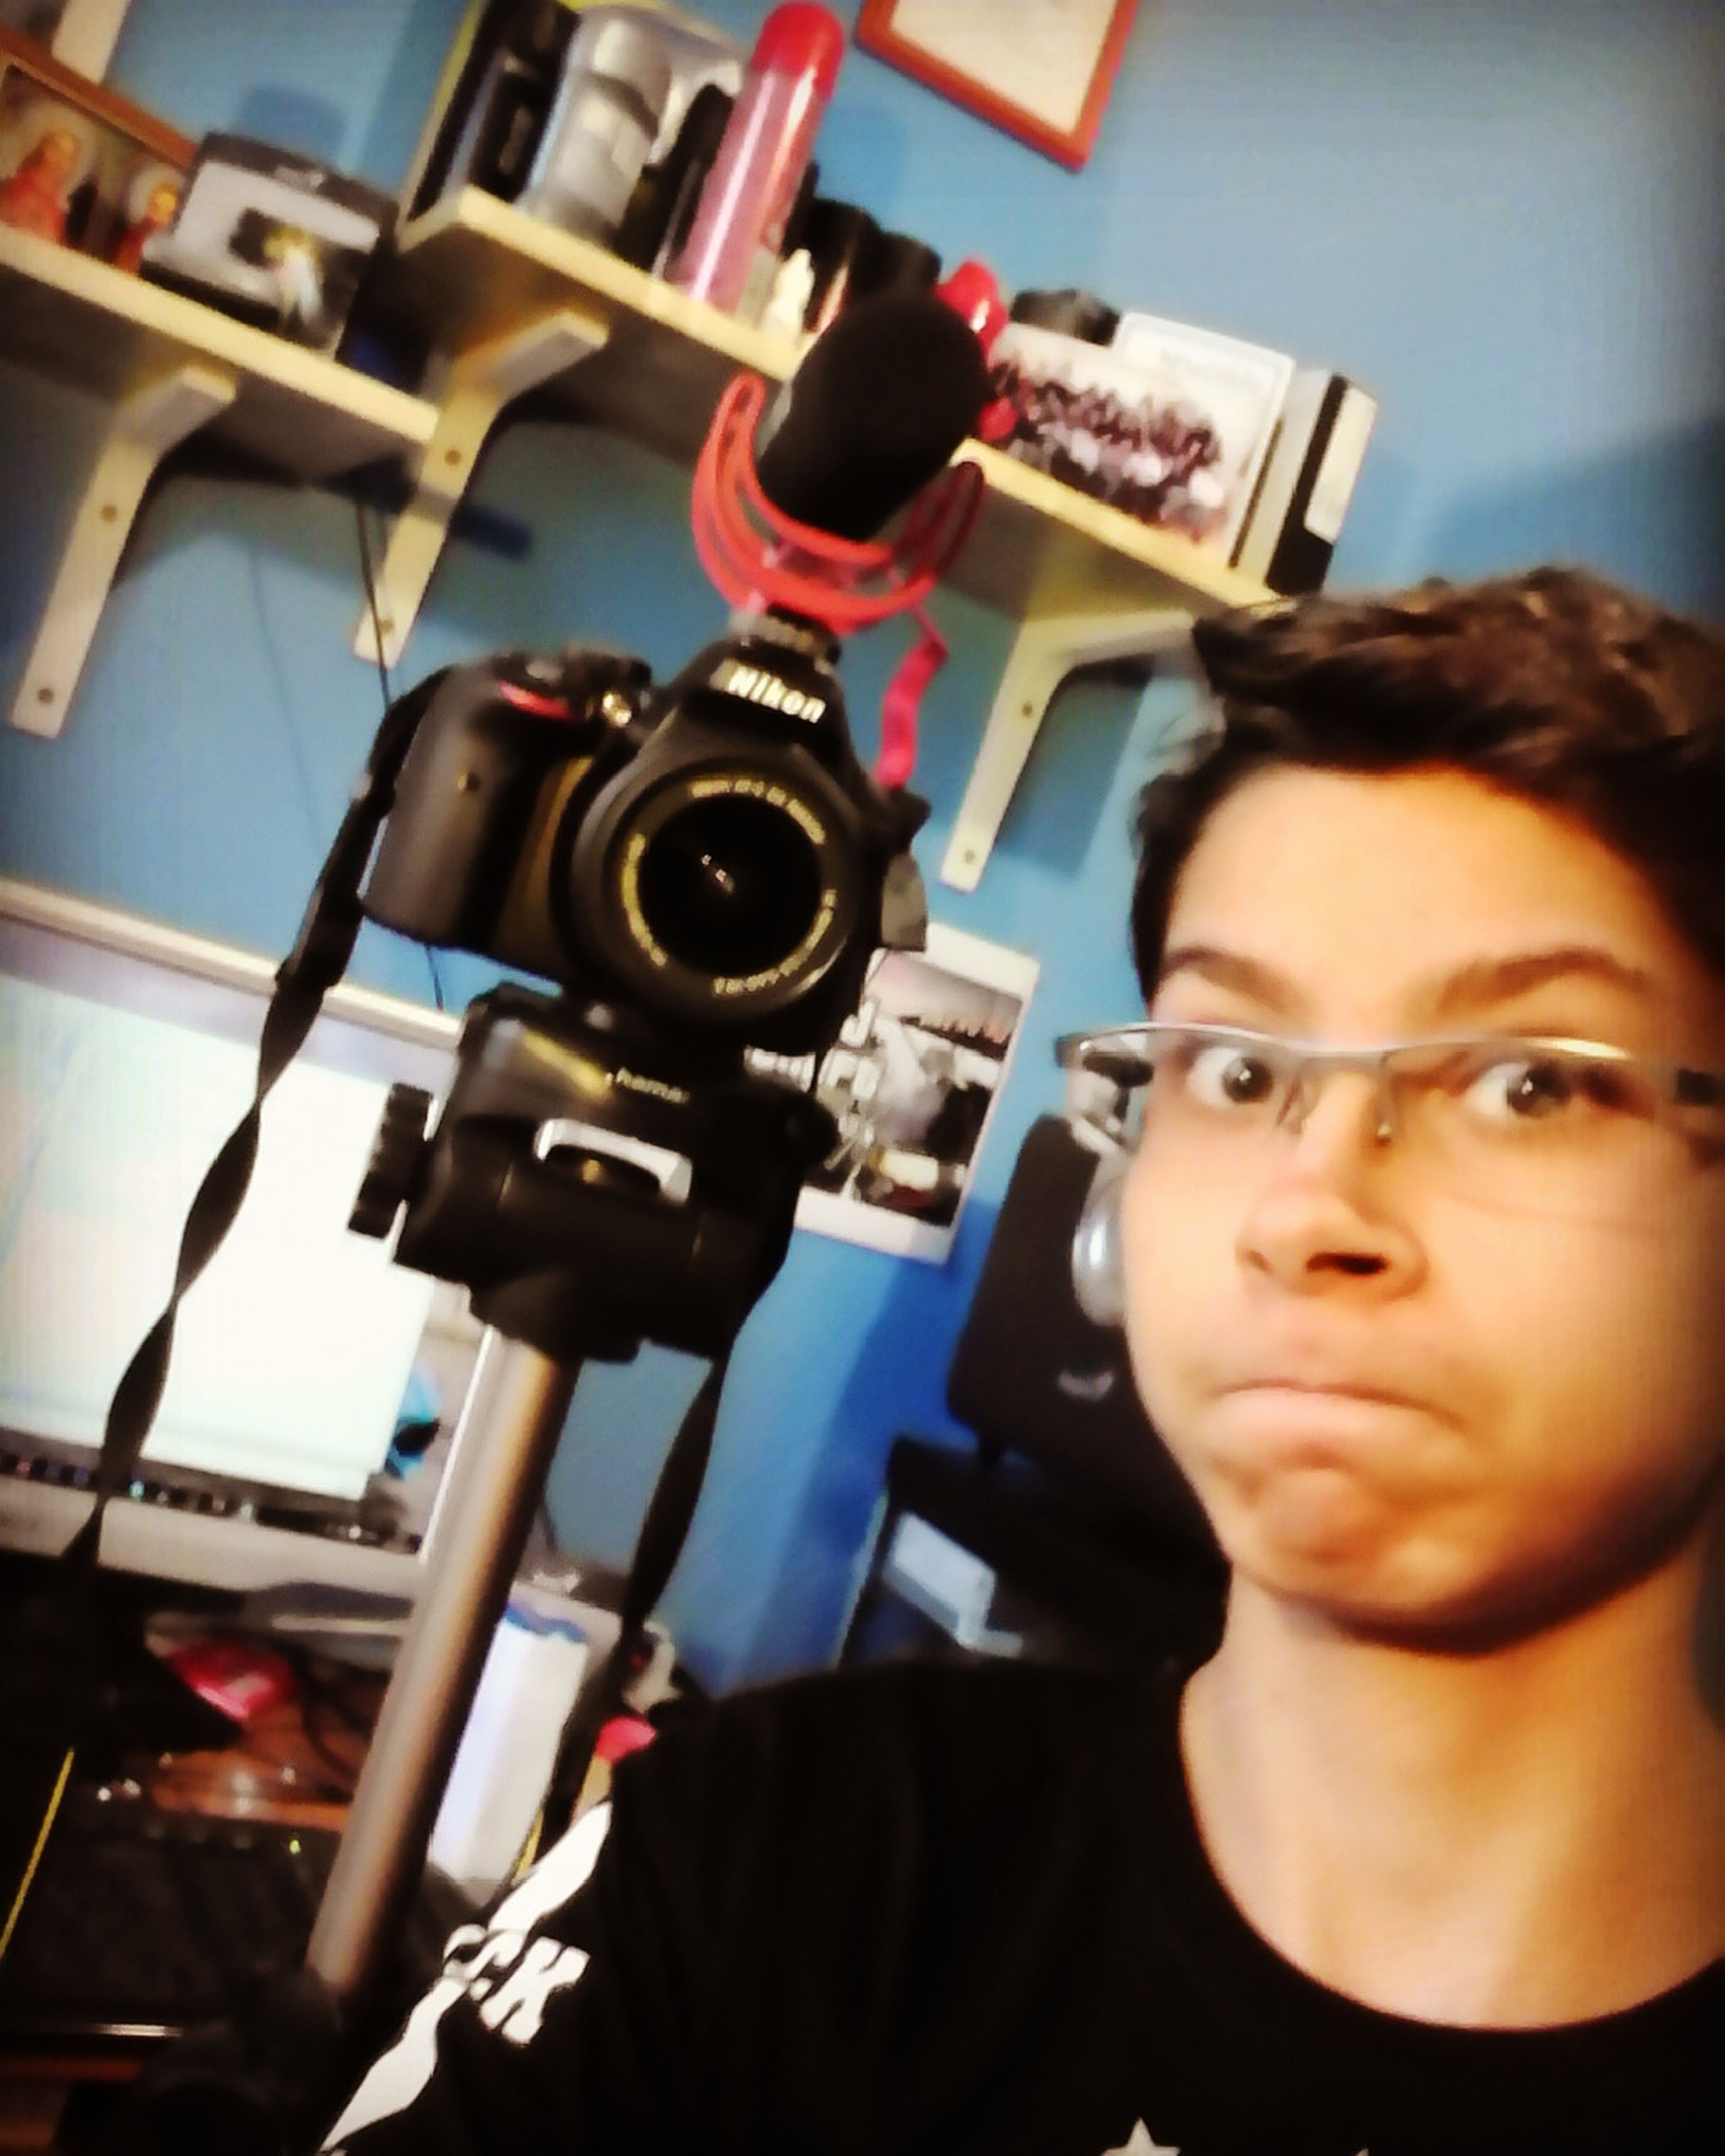 My YouTube Channel : NorbiuS (i'm a hungarian youtuber) Nikon D3300 Youtuber Rodevideomicgo